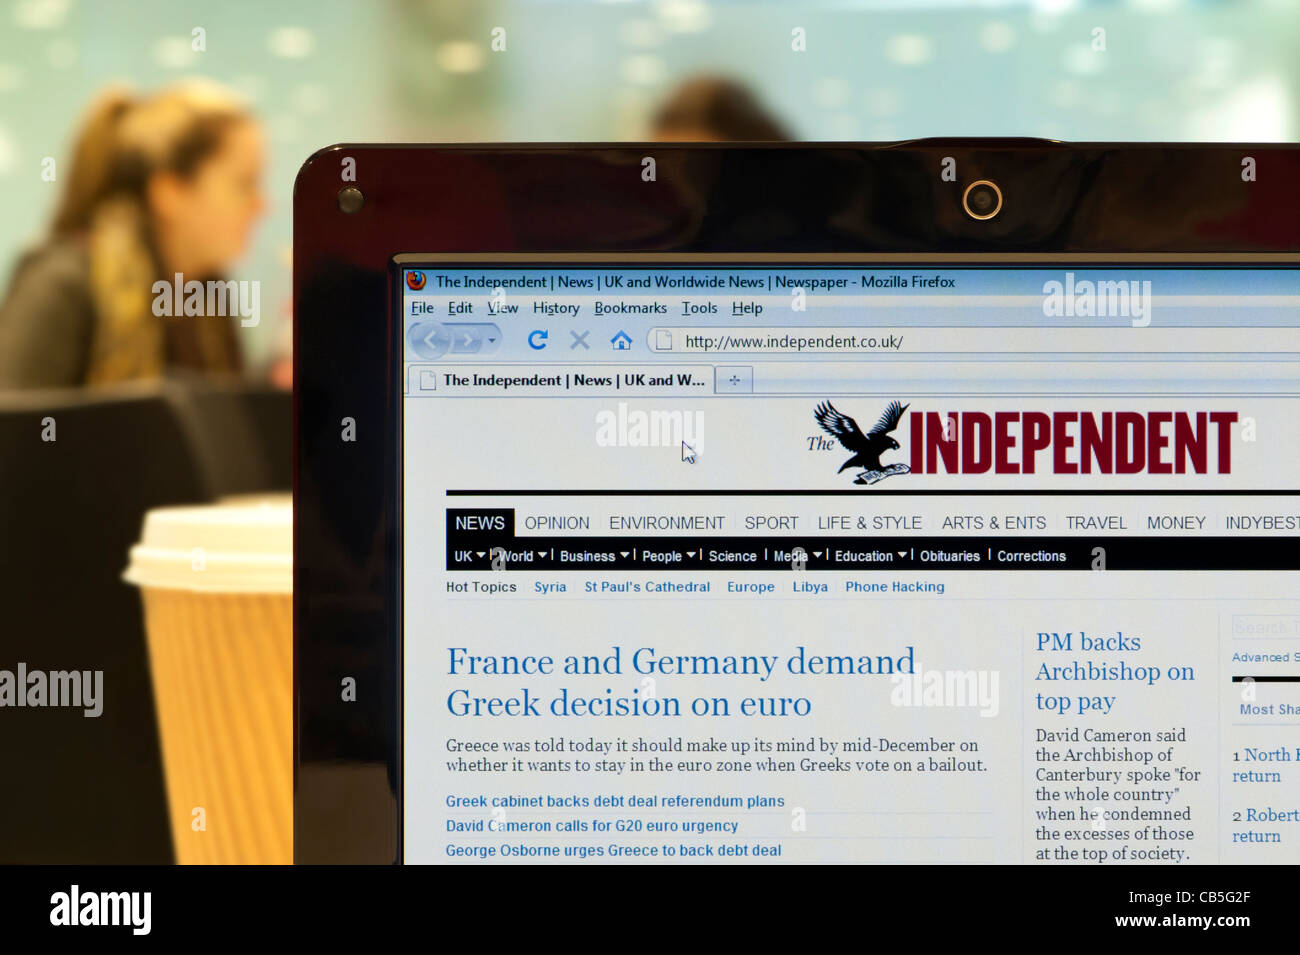 The Independent website shot in a coffee shop environment (Editorial use only: print, TV, e-book and editorial - Stock Image